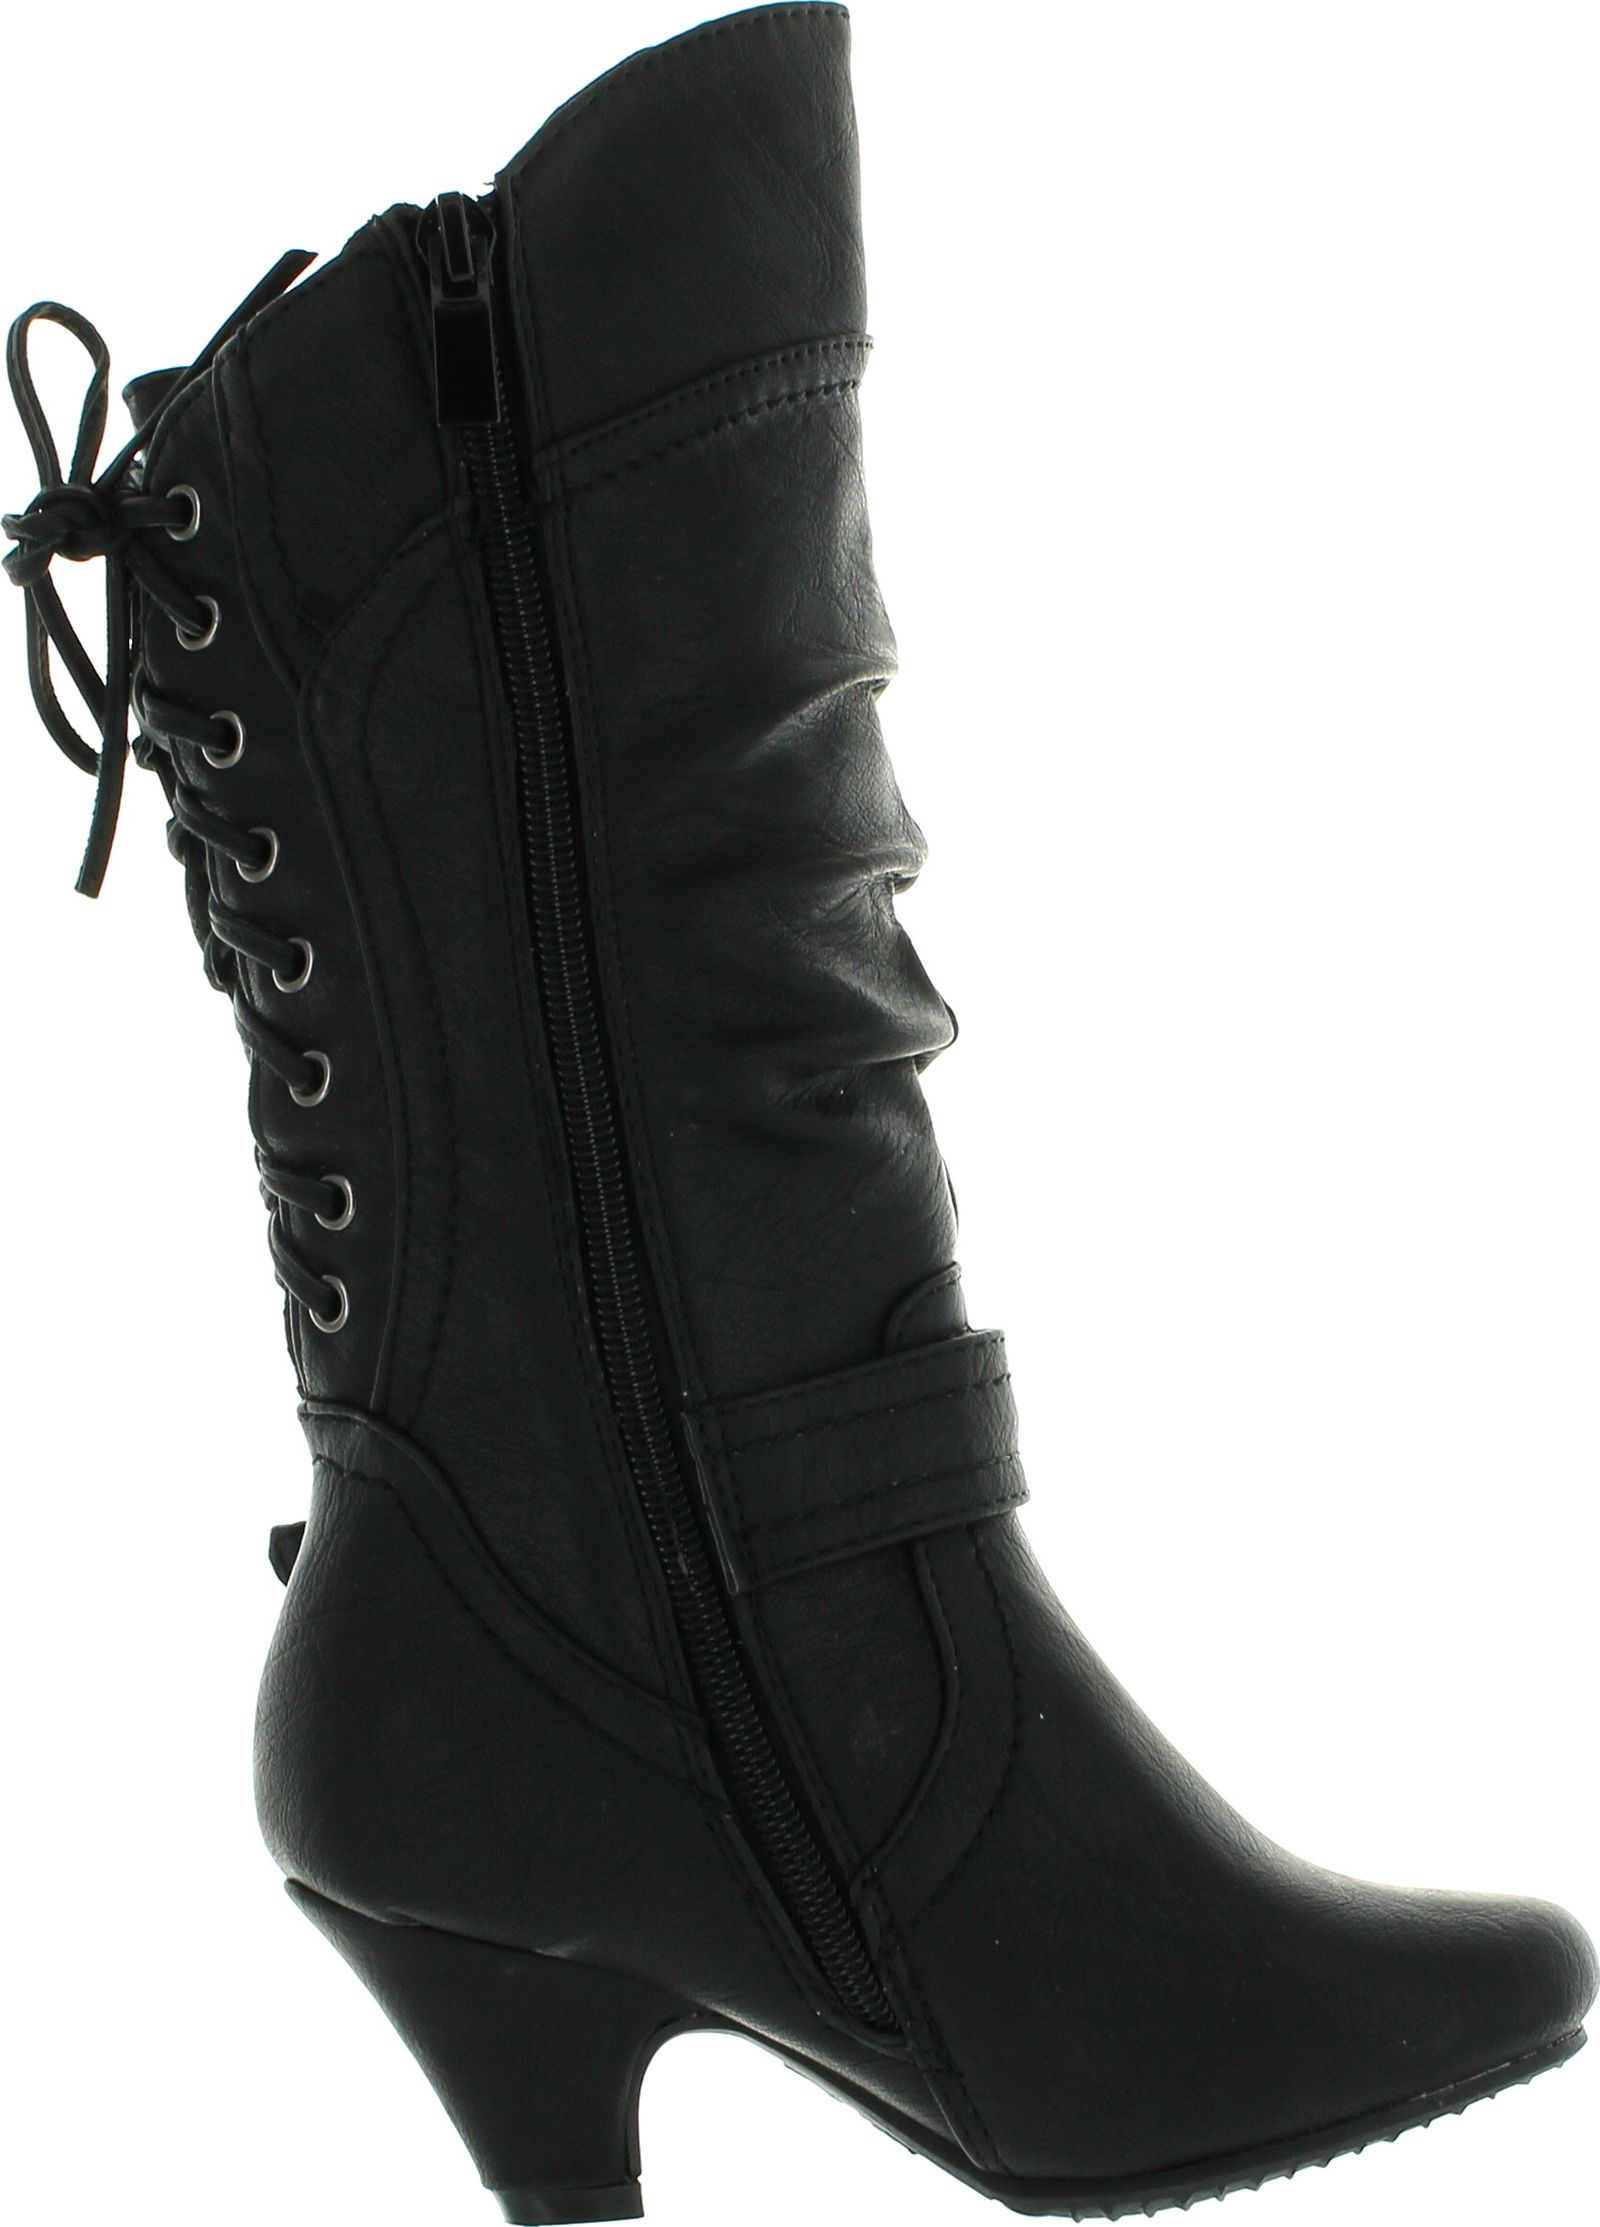 Back lace up boots - Lucky Top Kids Girls Back Lace Up Tie